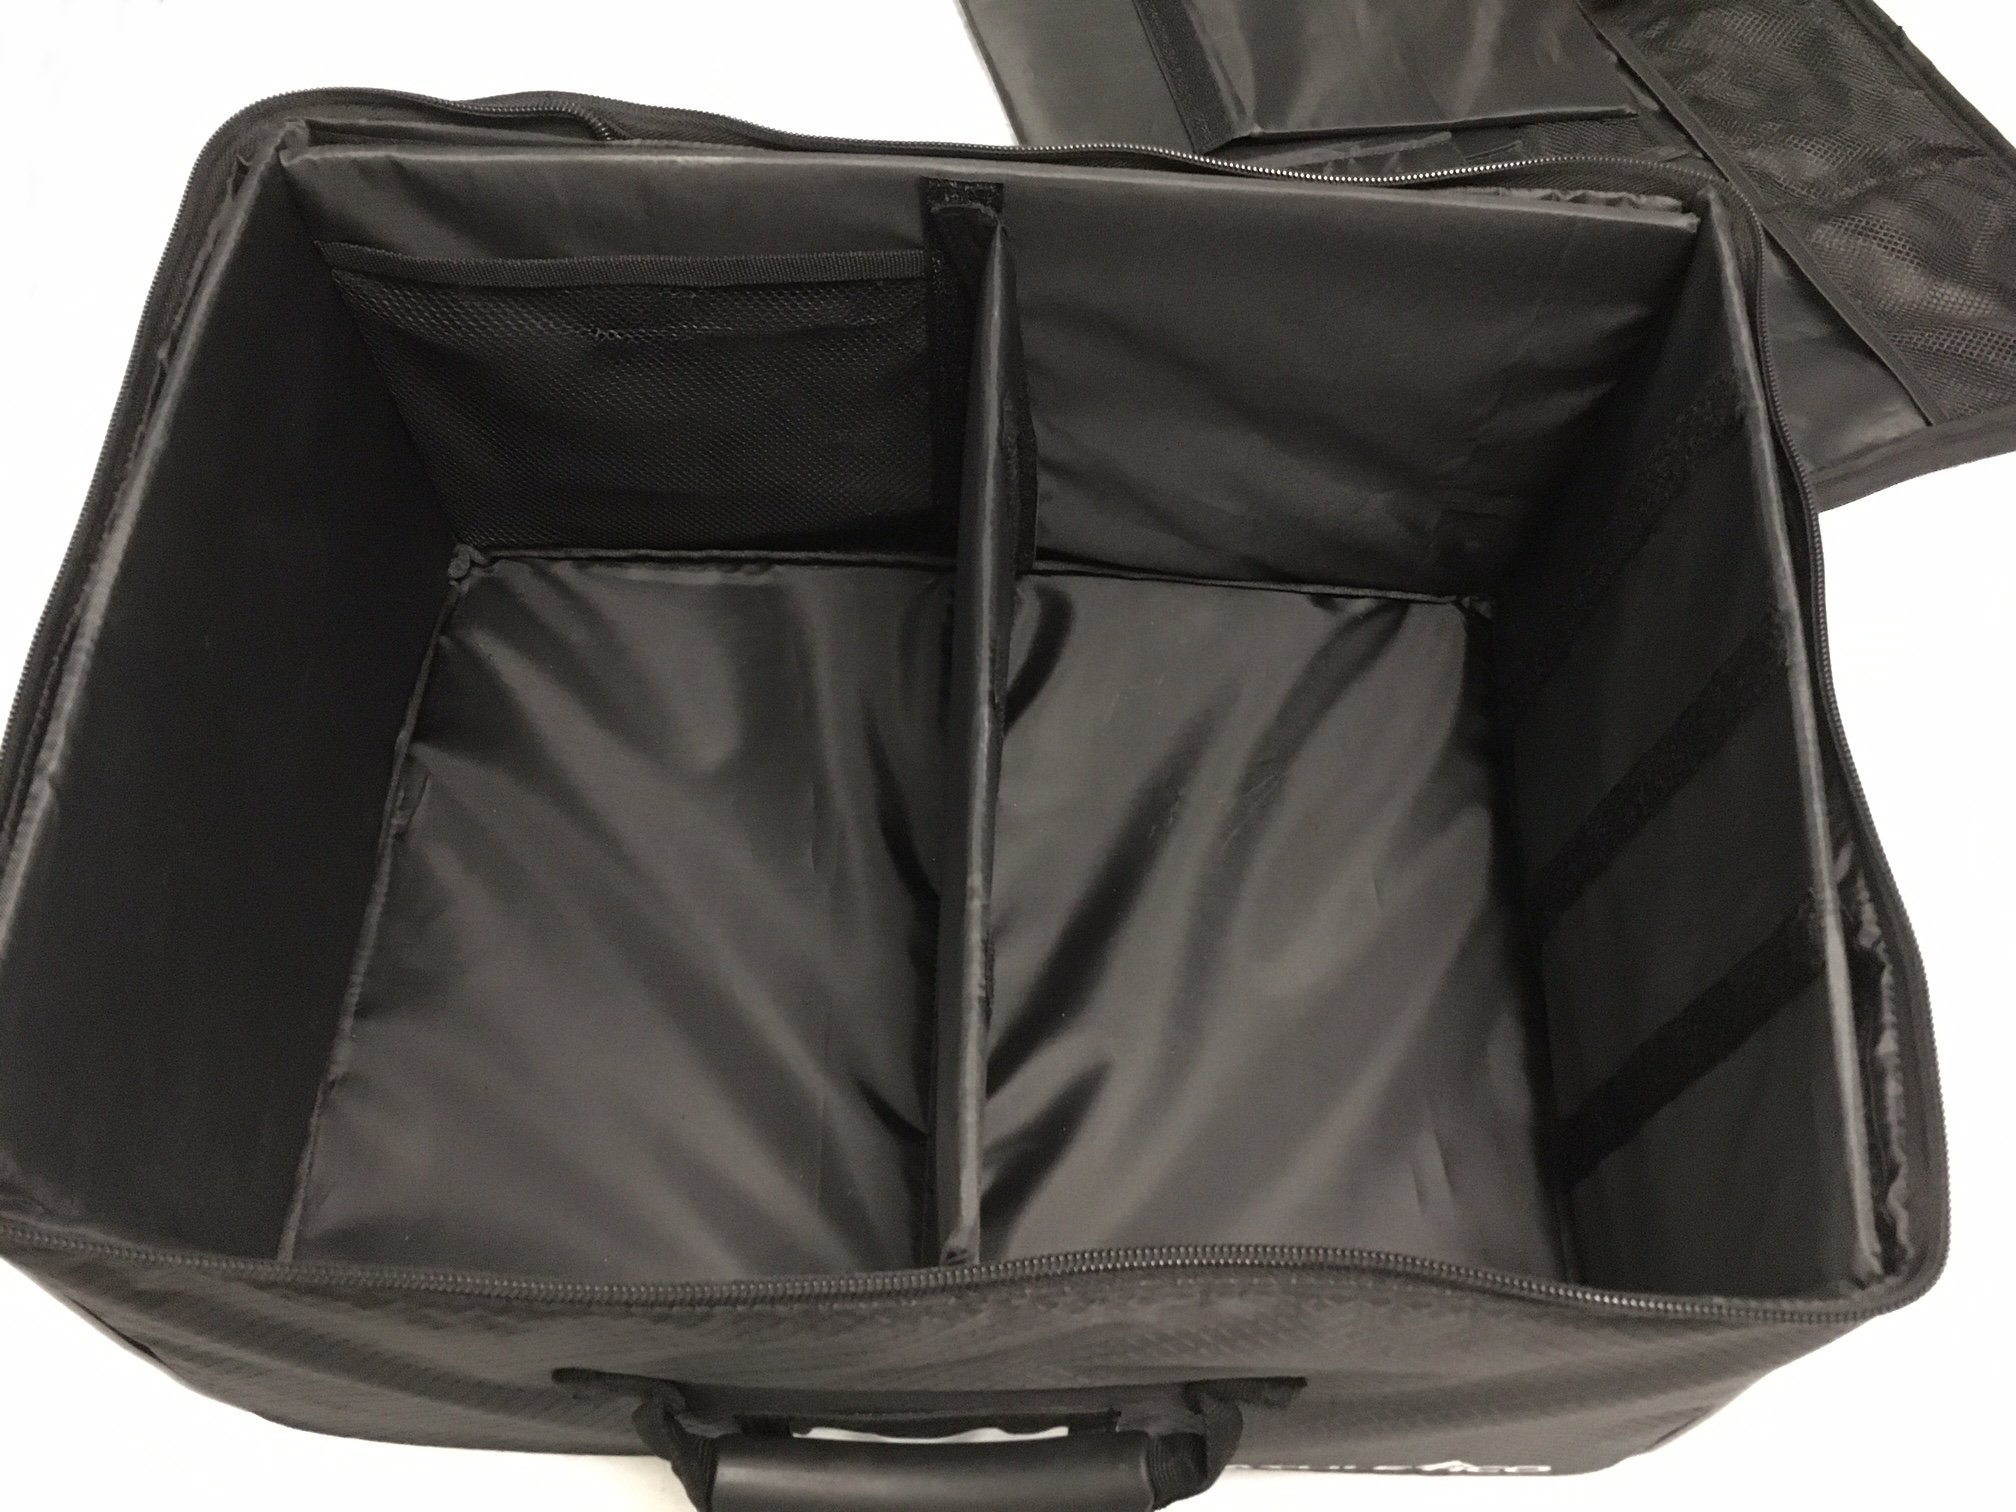 Athletico Golf Trunk Organizer Storage - Car Golf Locker To Store Golf Accessories | Collapsible When Not In Use by Athletico (Image #8)